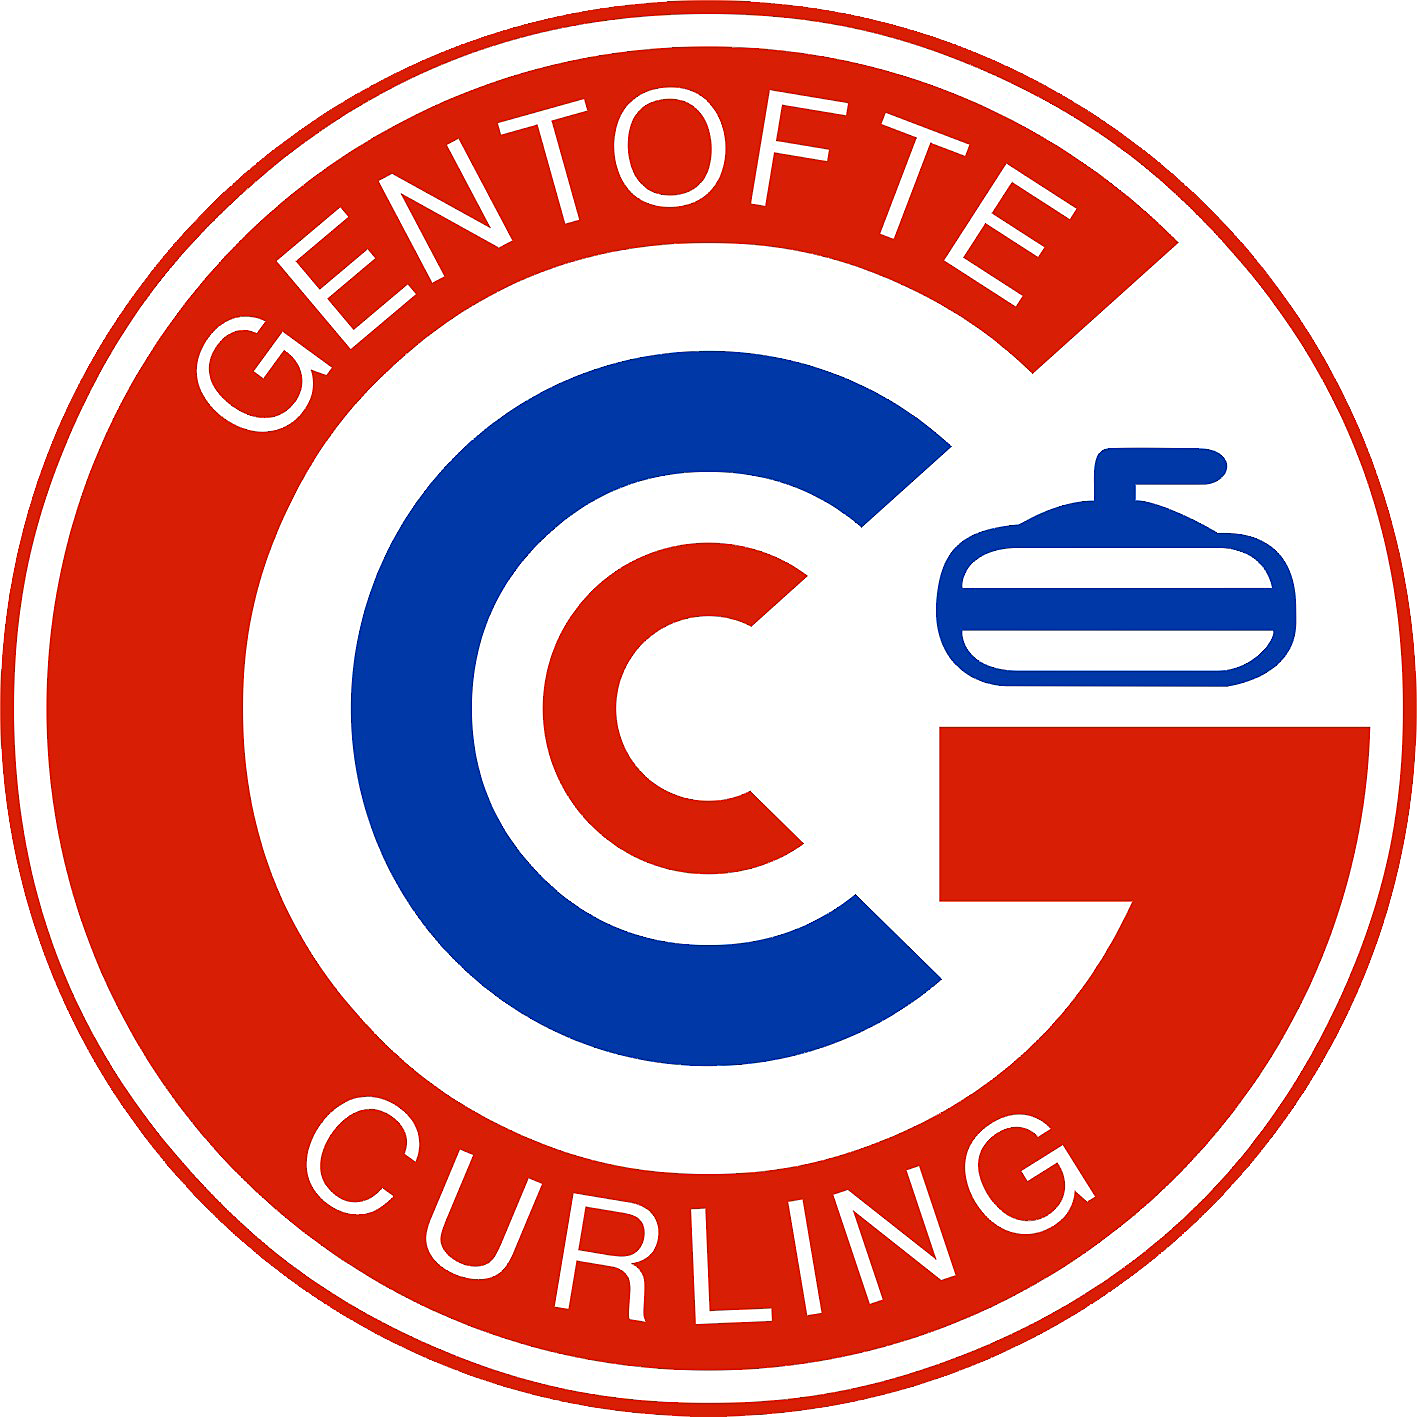 Gentofte Curling Club